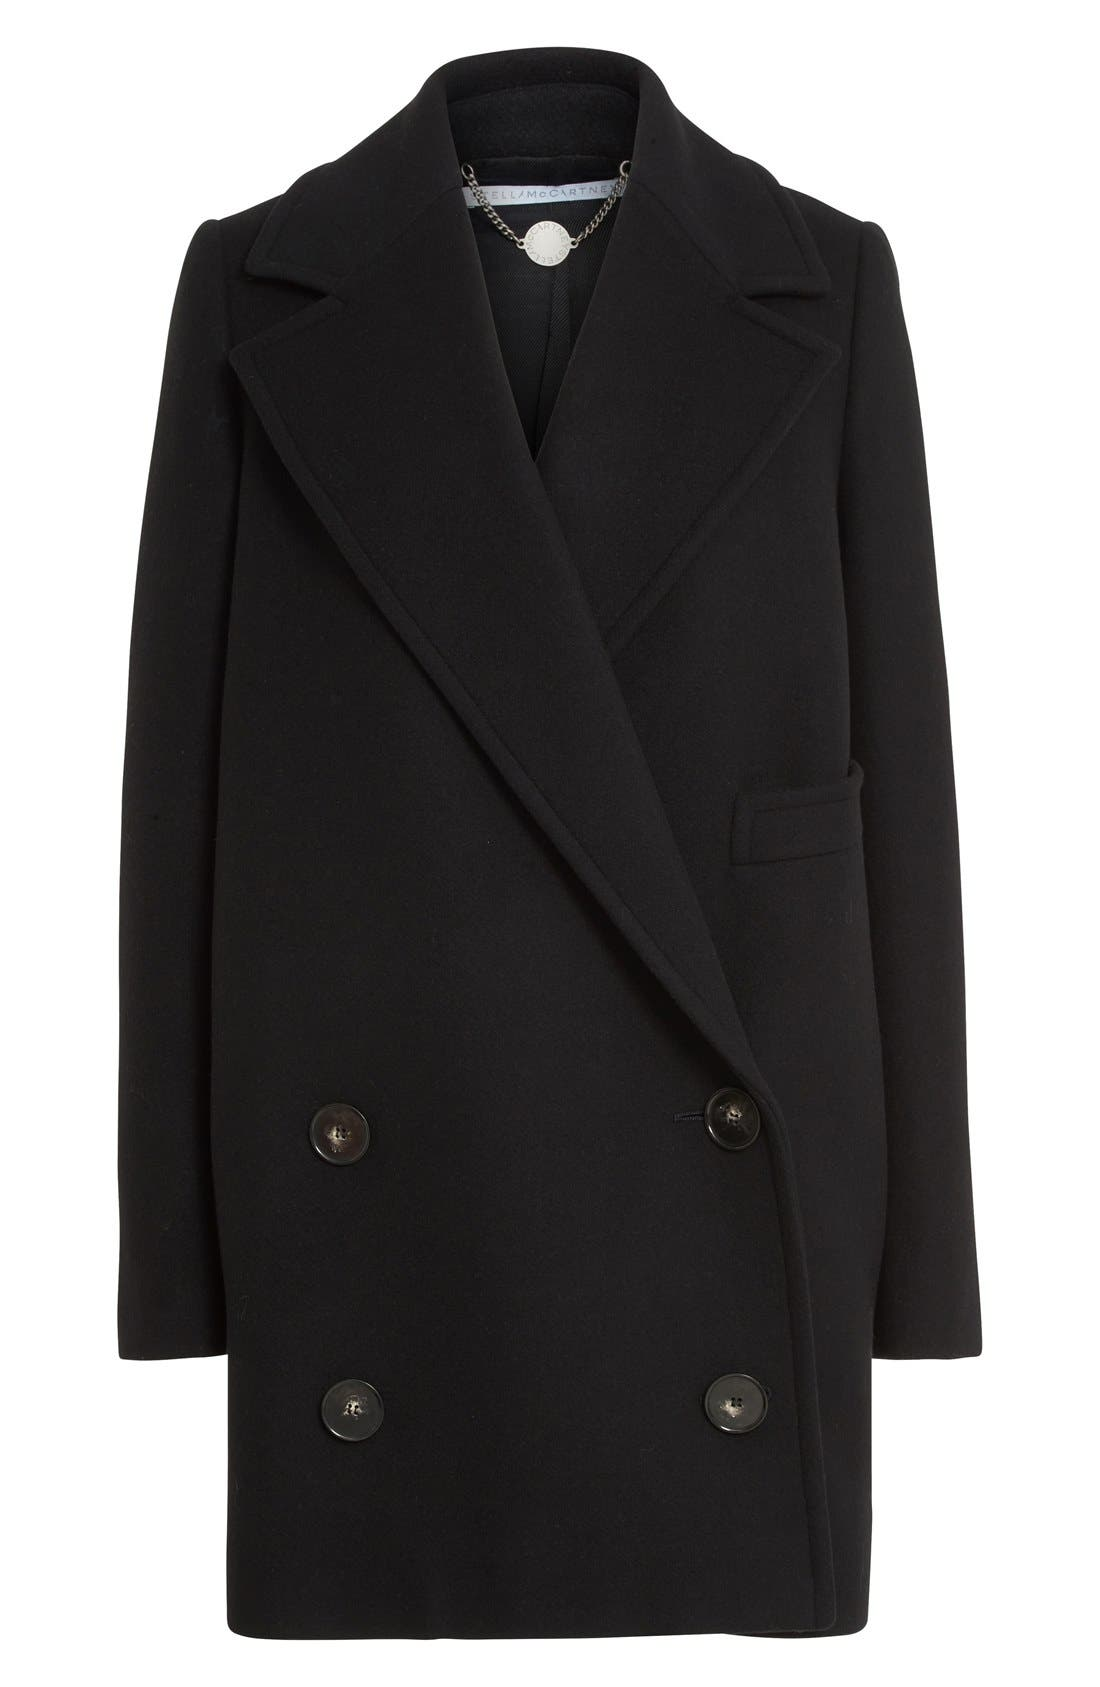 'Edith' Double Breasted Wool Blend Coat,                             Alternate thumbnail 6, color,                             001